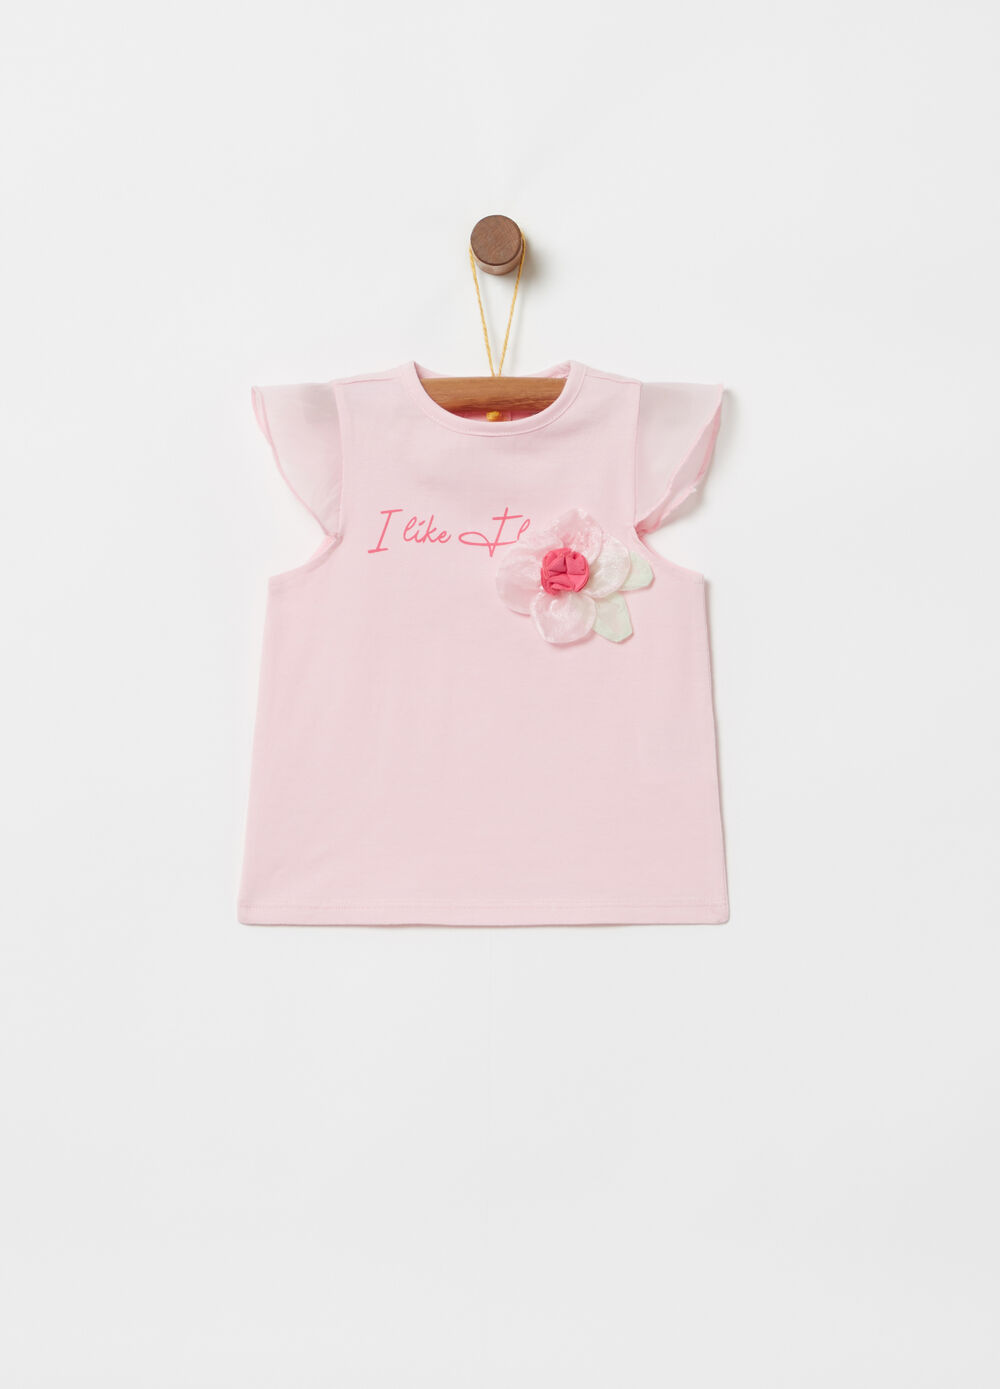 Long-sleeved organza T-shirt with bow print